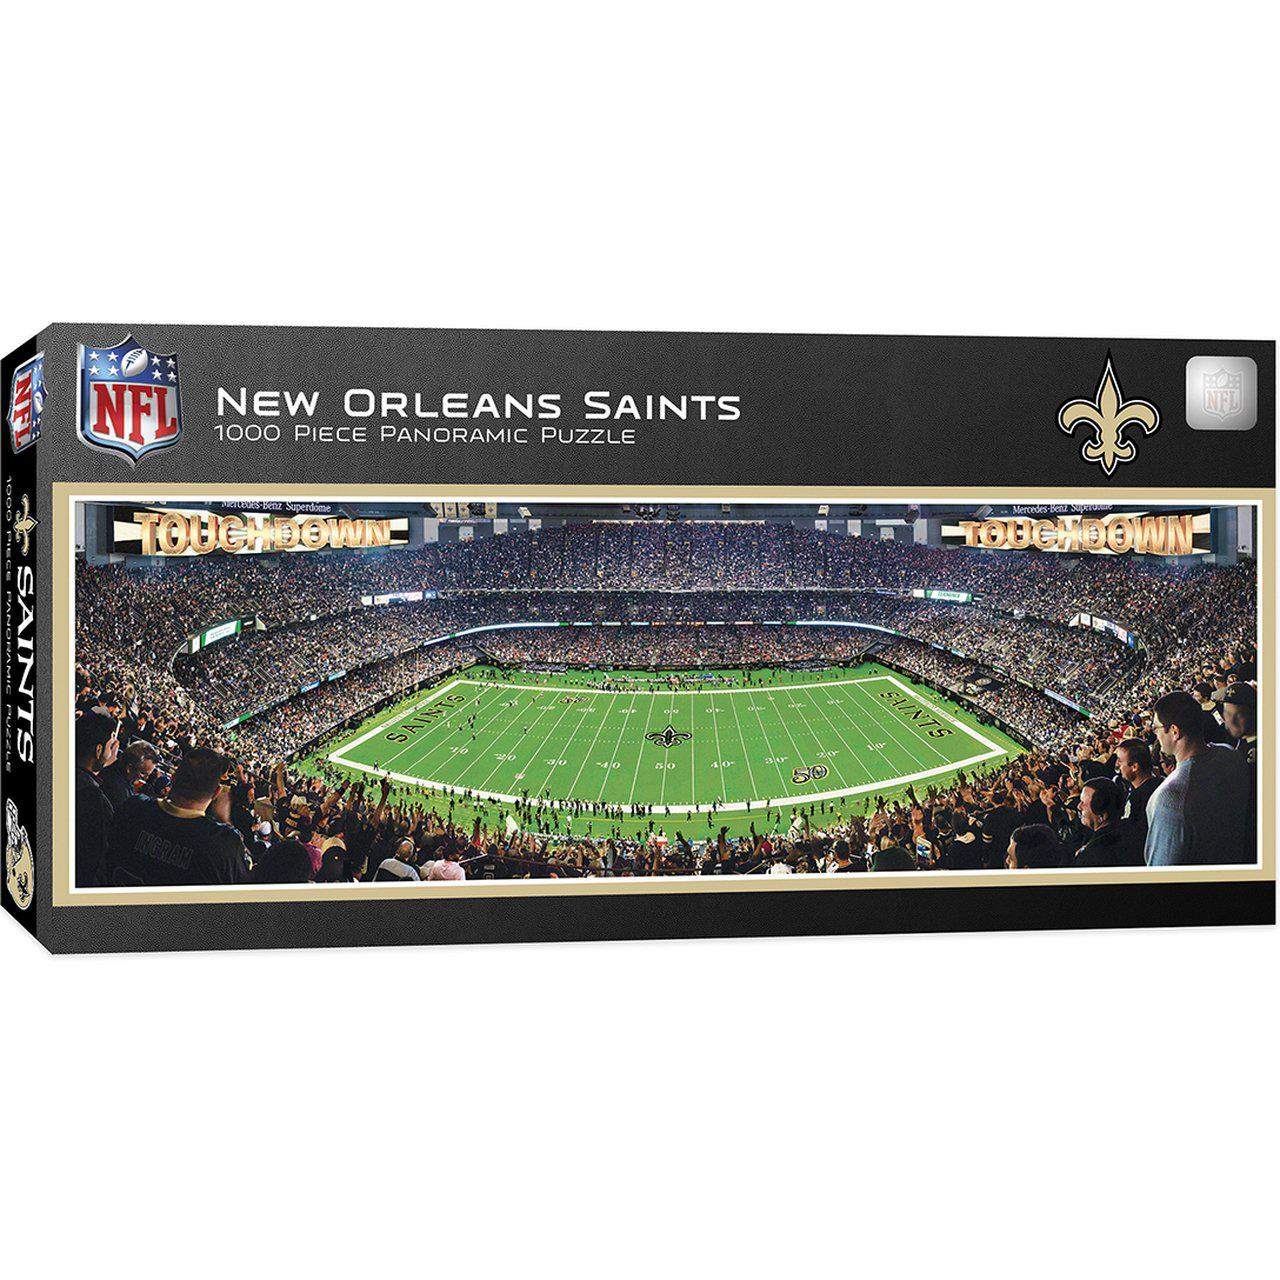 New Orleans Saints Stadium 1000 Piece Jigsaw Puzzle-Puzzle-MasterPieces Puzzle Company-Top Notch Gift Shop